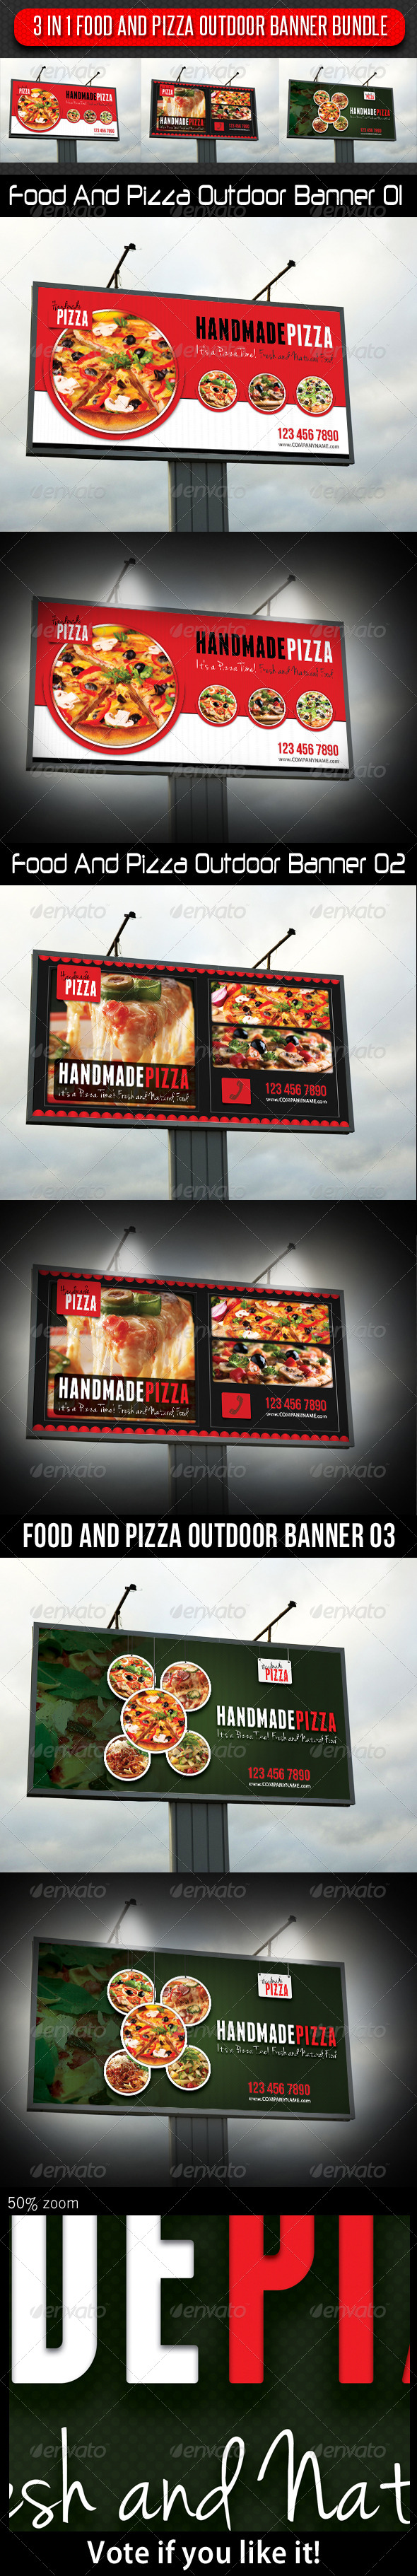 3 in 1 Food And Pizza Outdoor Banner Bundle - Signage Print Templates